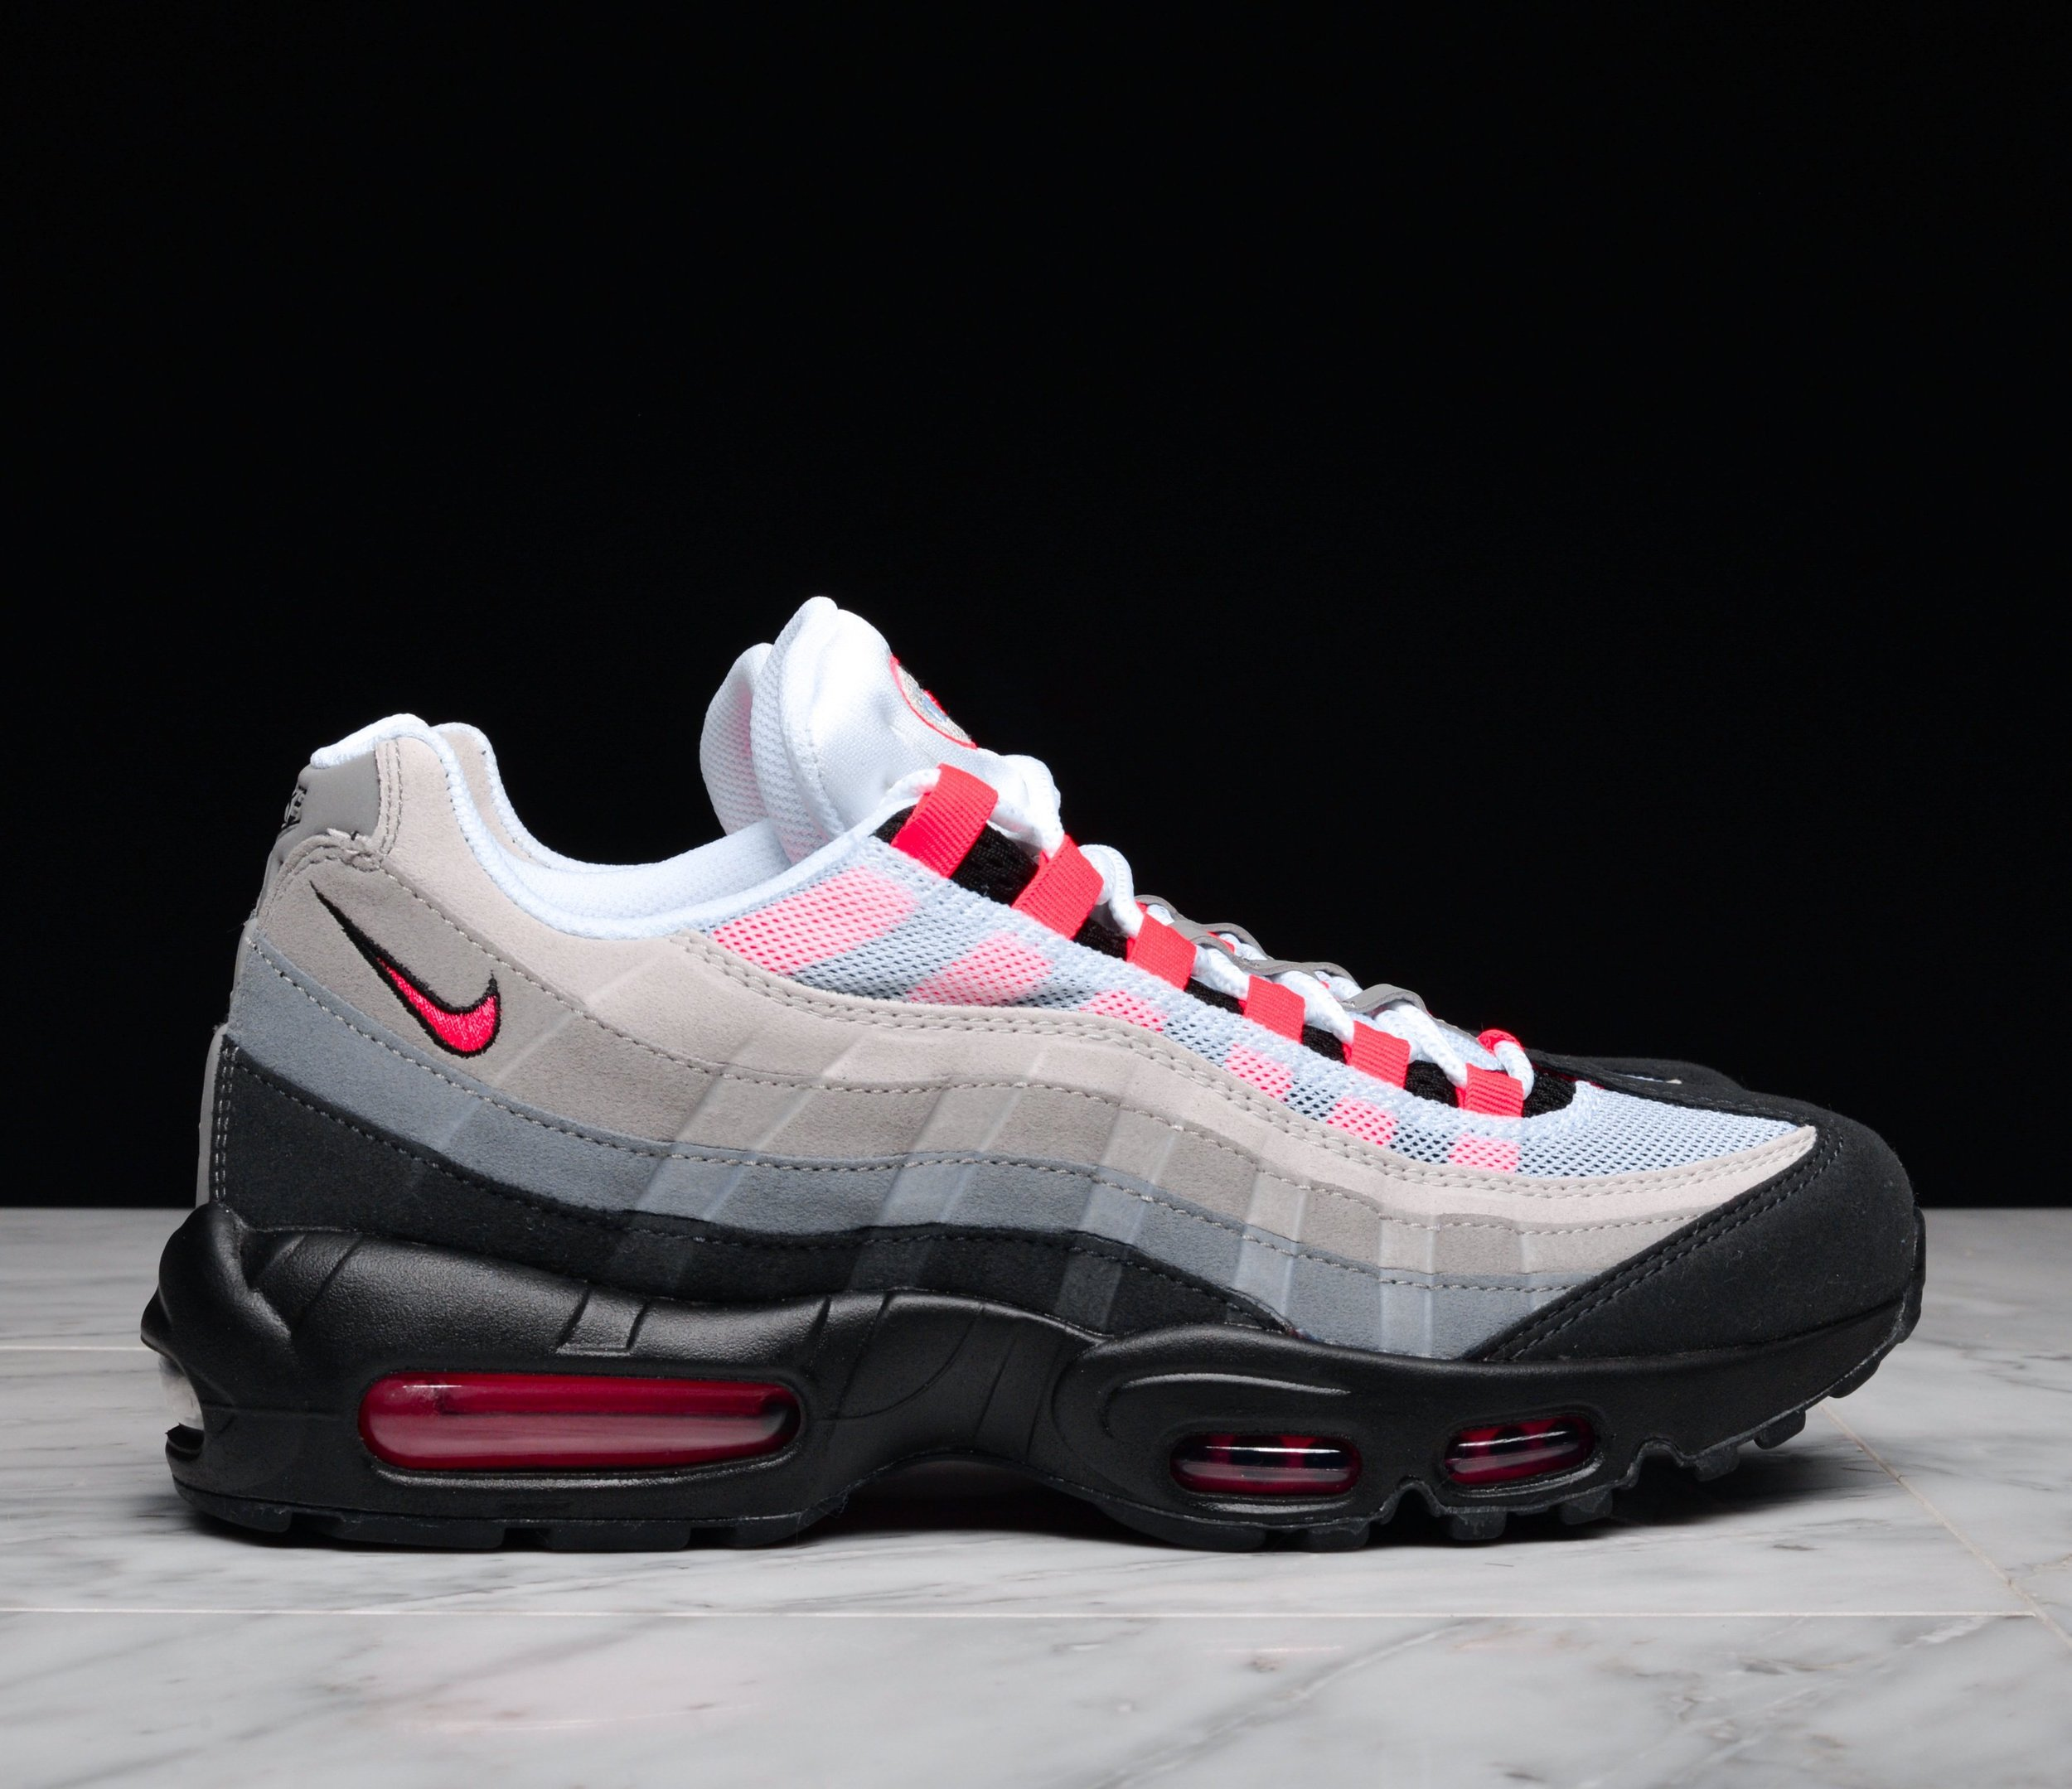 Now Available: Nike Air Max 95 OG